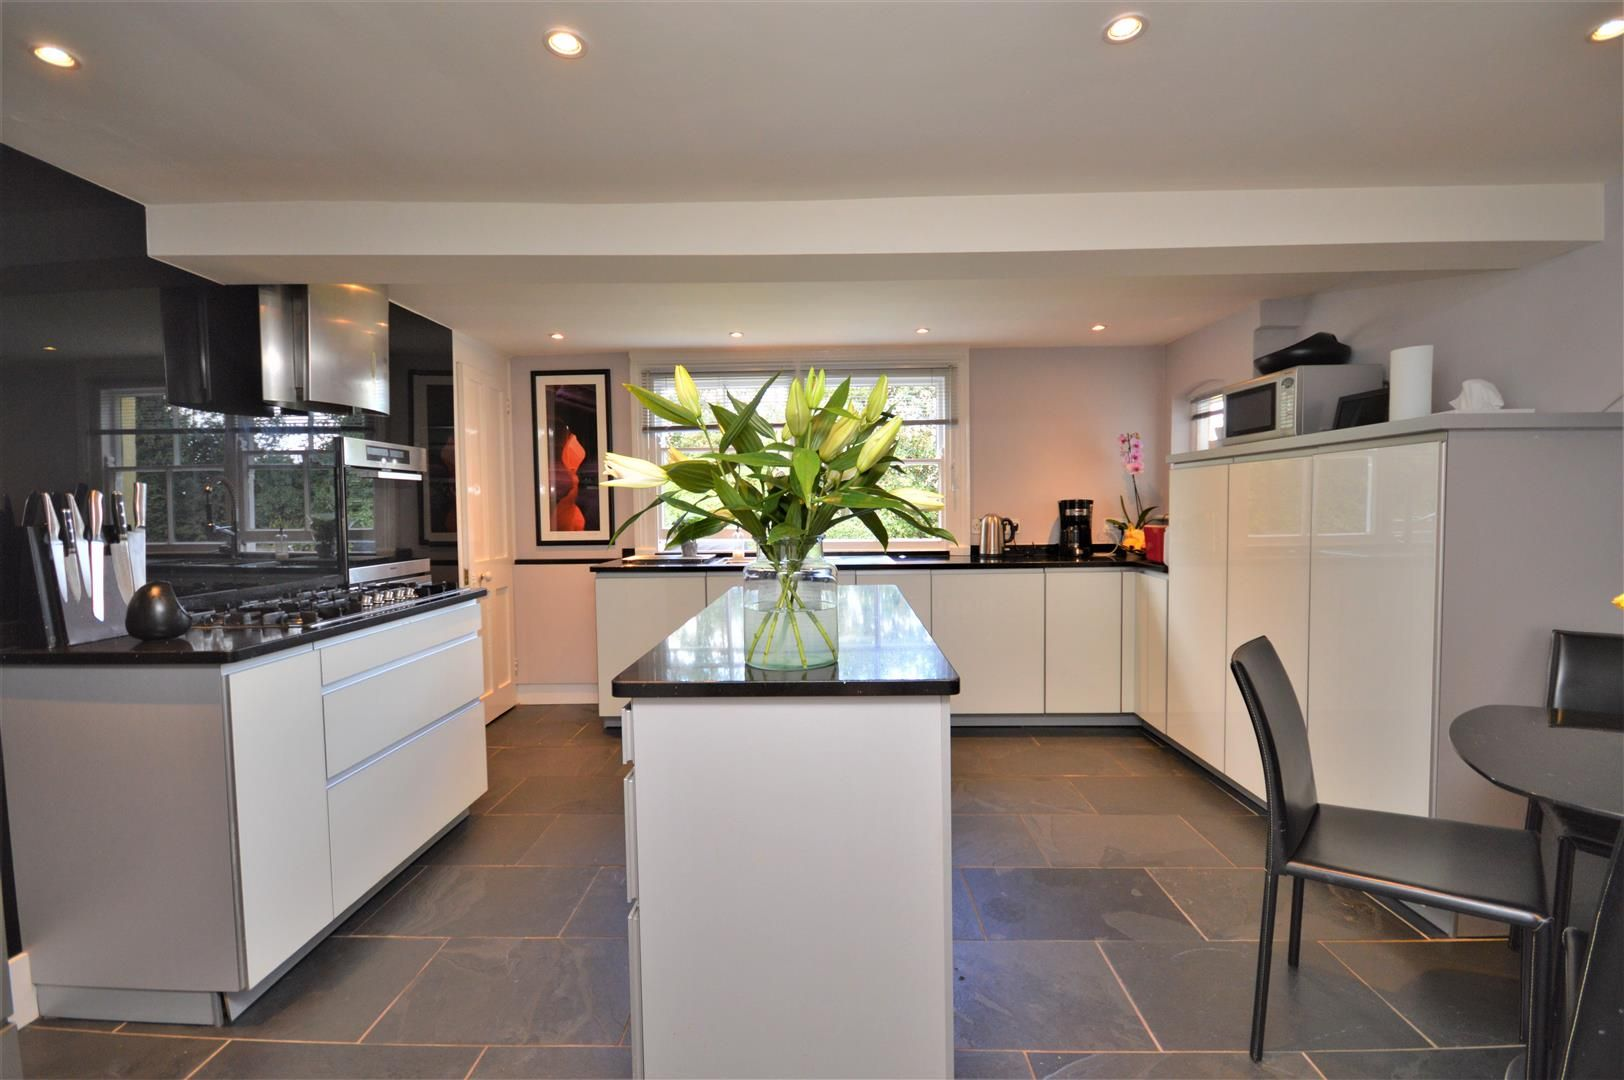 5 bed detached for sale in Stretton Sugwas  - Property Image 9